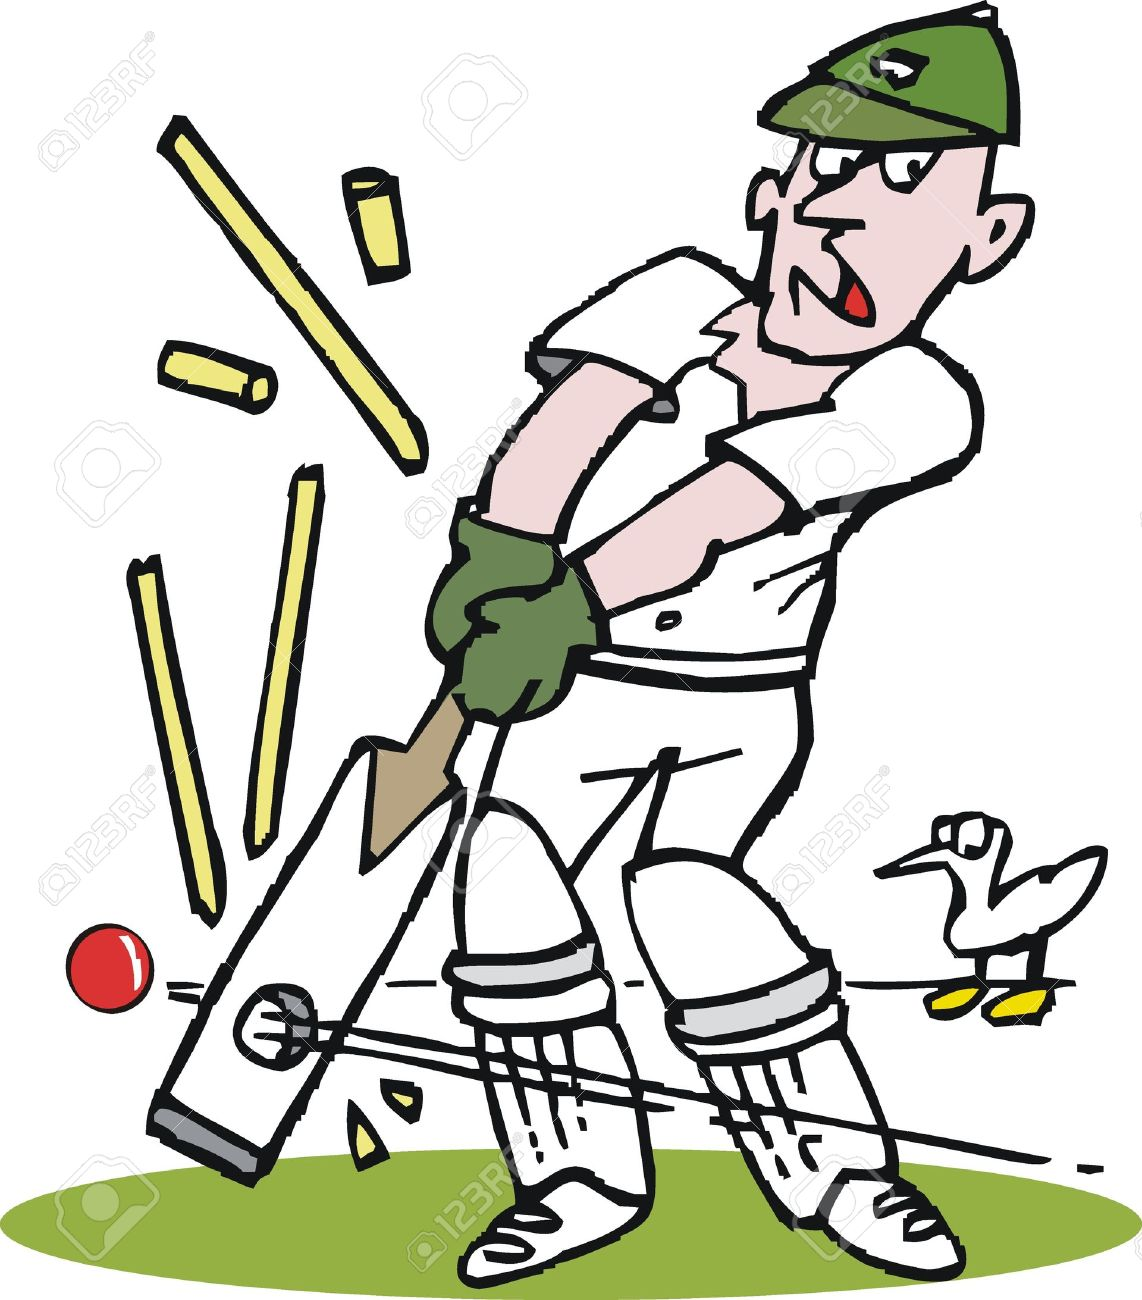 vector cartoon of cricketer being bowled out royalty free cliparts